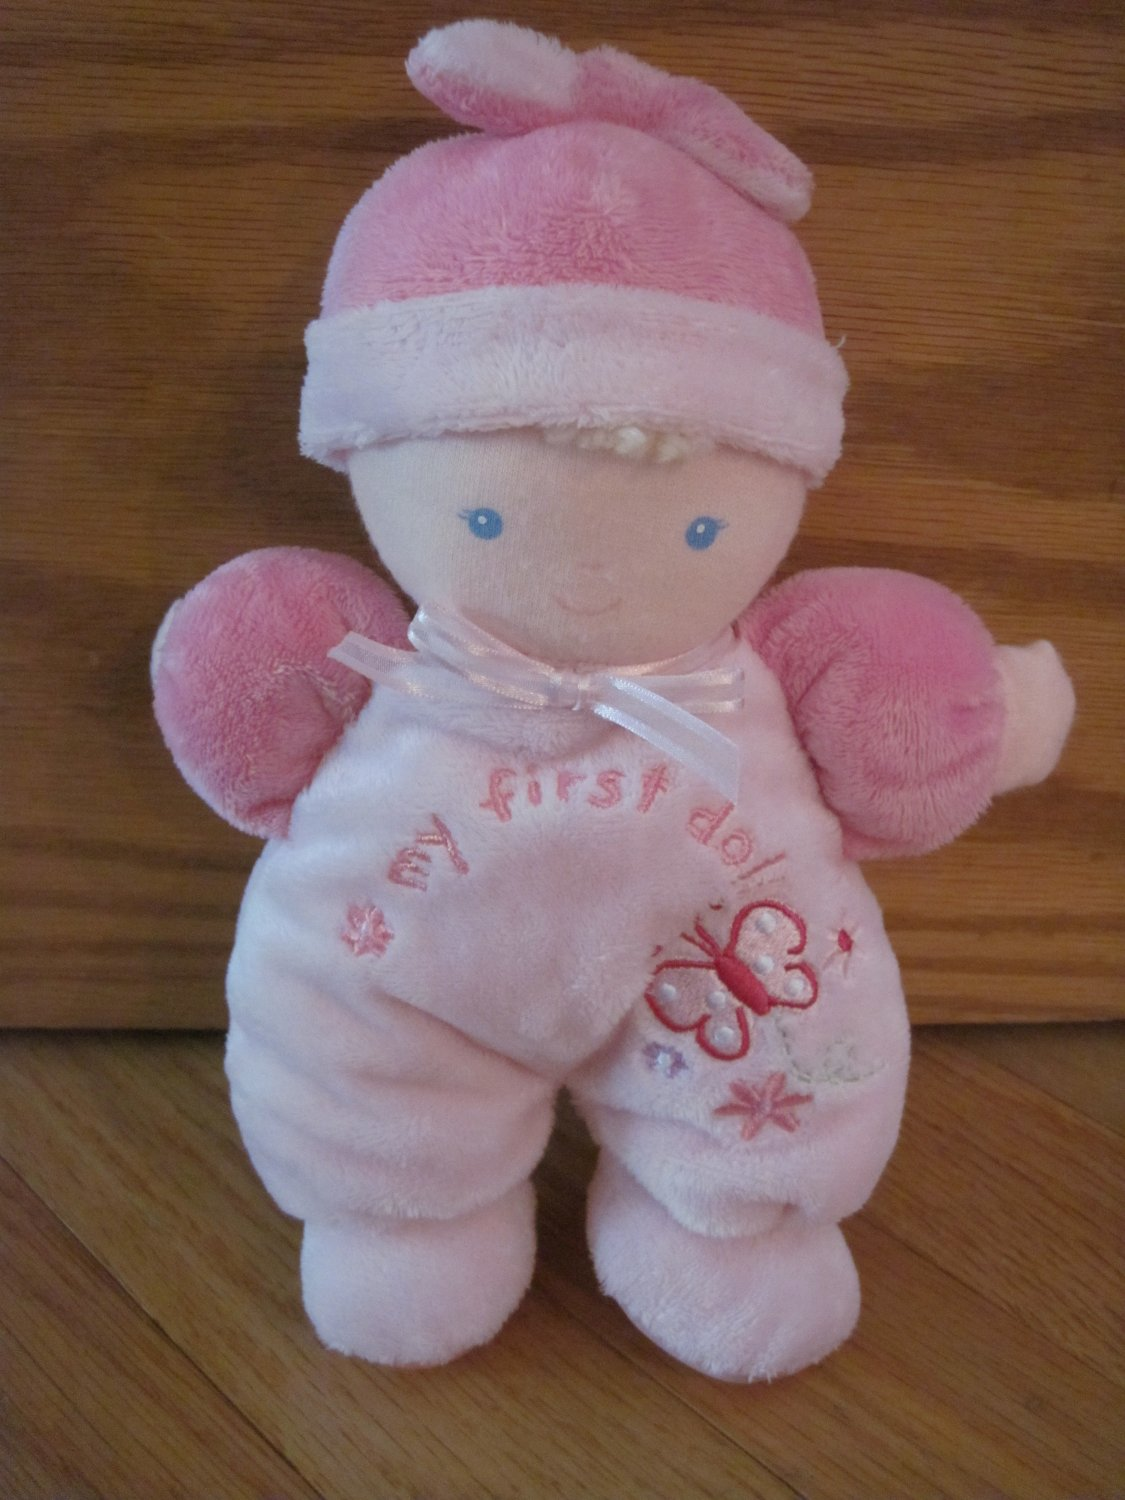 Carters Just One Year My First Doll Blond Pink Velour